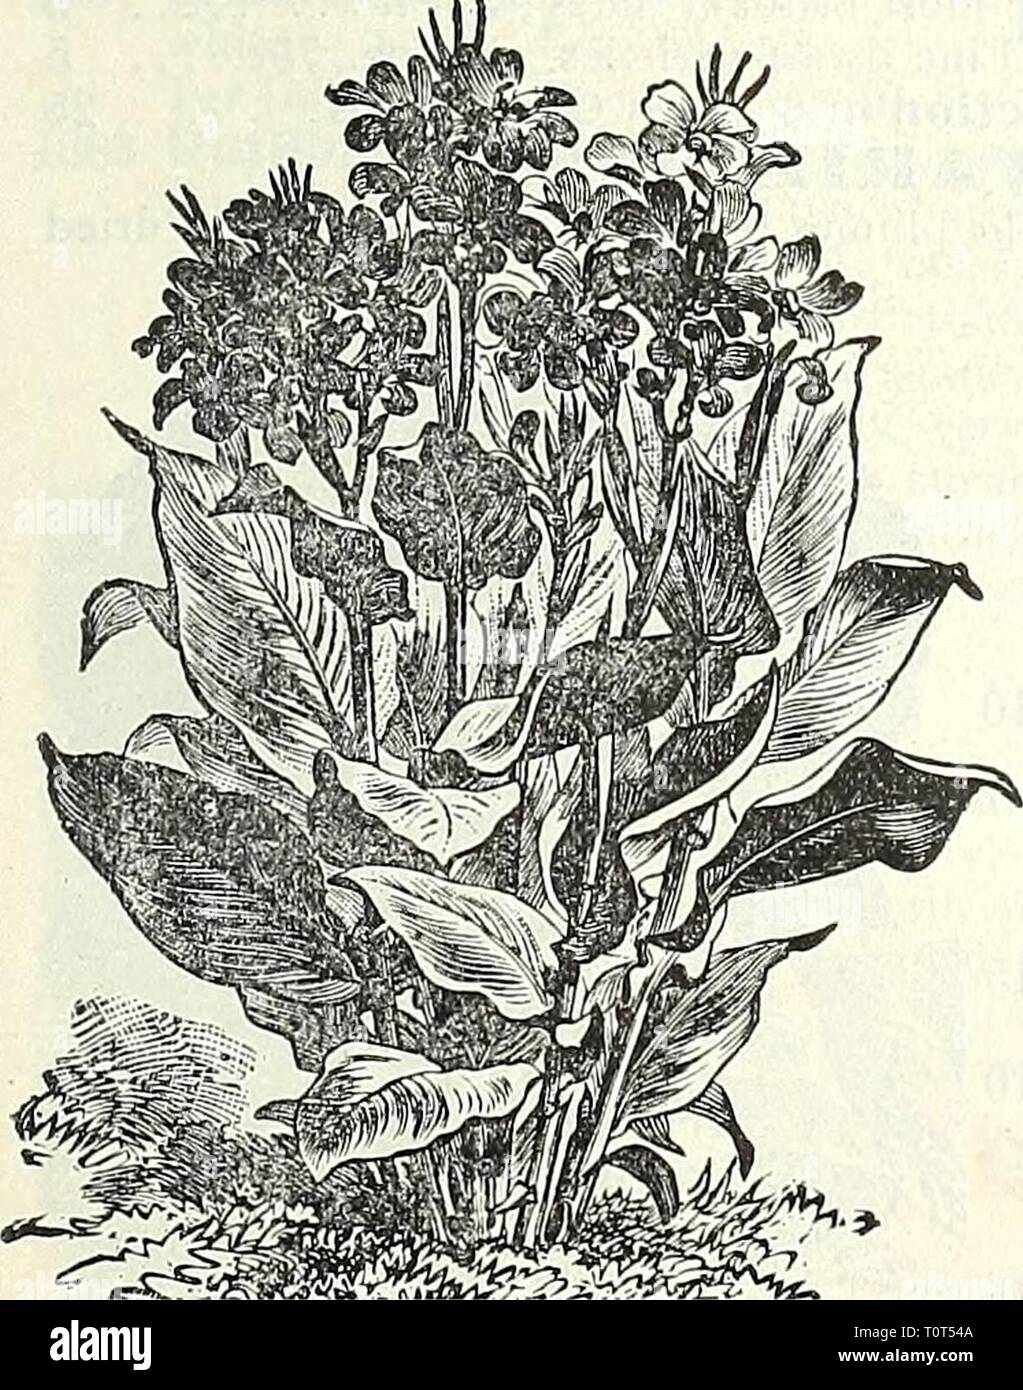 Dreer's garden book  1905 Dreer's garden book : 1905  dreersgardenbook1905henr Year: 1905  Canary-Bn<u Vine. Campanula Media Calycanthema (Cup and Saucer Canterbury Bells). Canary-Bird Vine. (Tropaeolum C'aiiariense.) PER PKT, 1741 A beautiful rapid annual climber, the charming liitle canary-colored blossoms bearing a fancied resem- I'lance to a bird with its wings half expanded. (See cut.) Per oz., 40 cts 5 Hardy Perennial Candytufts. (Iberis.) 1771 Gibraltarica Hybrida. Very fine species, while flowers, shading I., lilac 10 1772 Sempervirens. A profuse white blooming hardy perennial, comi - Stock Image